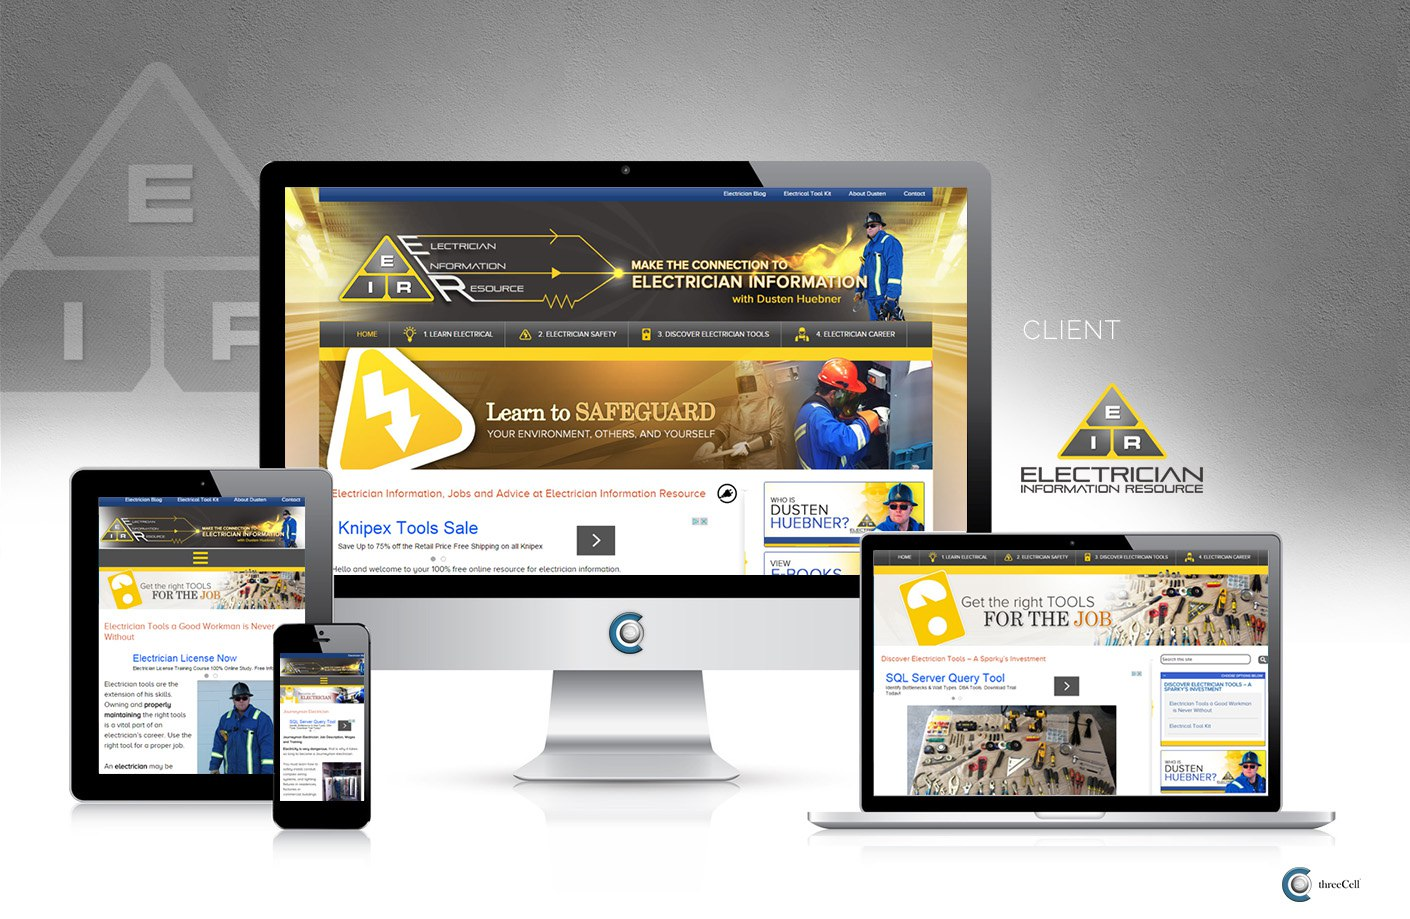 Electrician Information Resource - ThreeCell Web Design